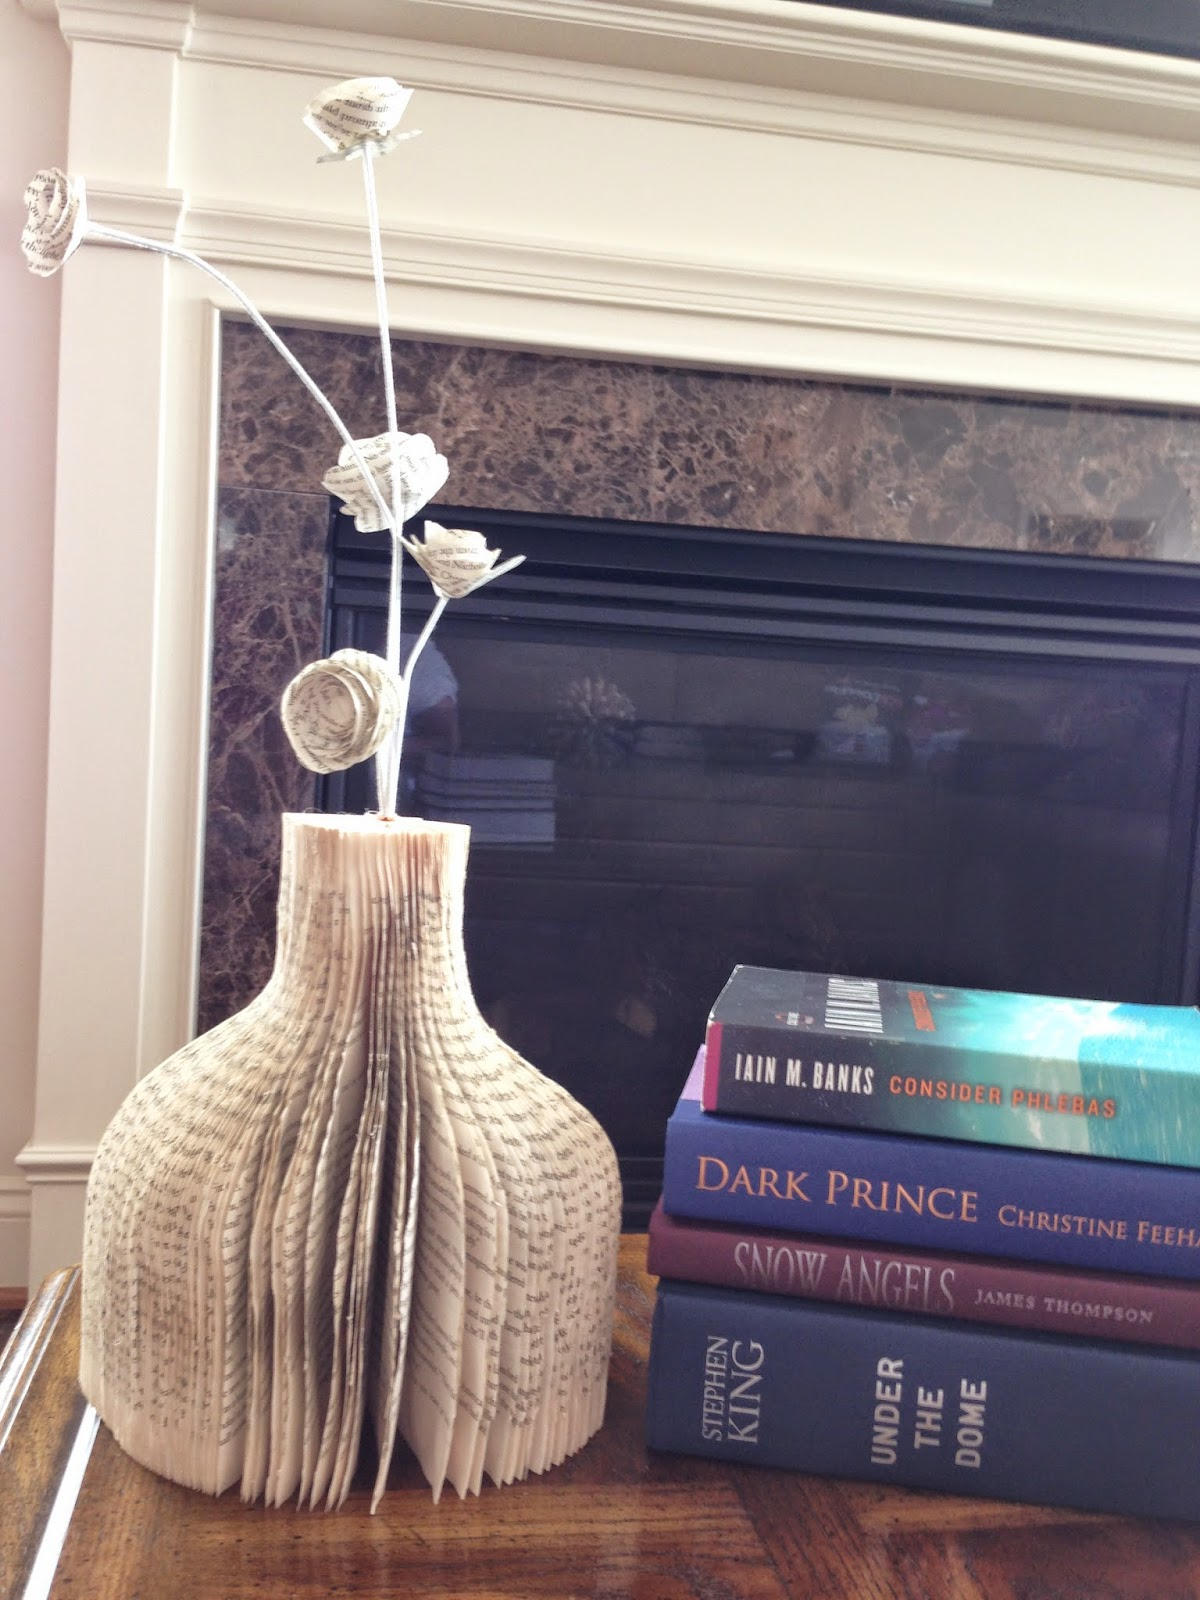 http://plumperfectandme.blogspot.com/2014/07/how-to-cut-book-into-vase.html